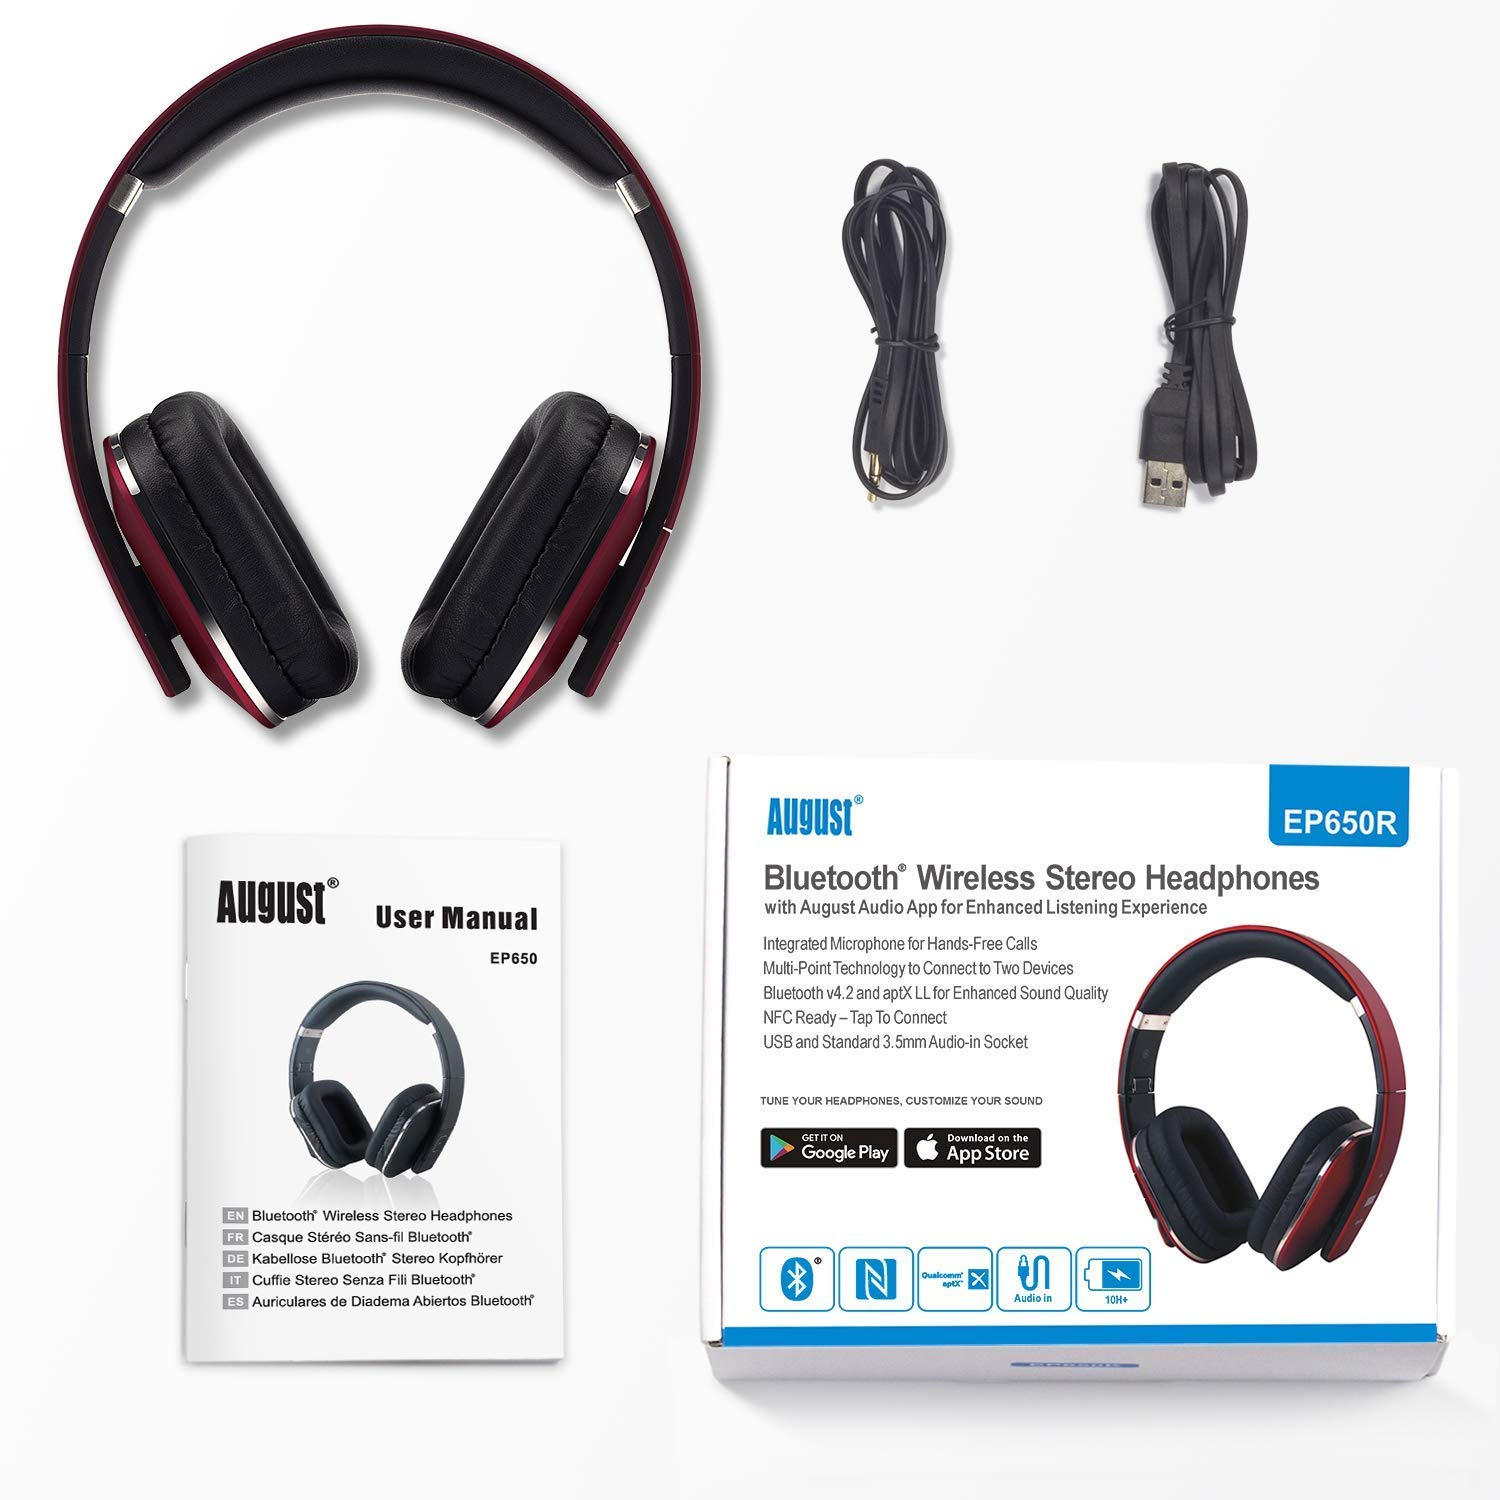 581f8351a78 Over Ear Bluetooth Wireless Headphones - August EP650 - Enjoy Bass Rich  Sound and Optimum Comfort from this Wireless Over Ear Headset with NFC and  aptX LL ...